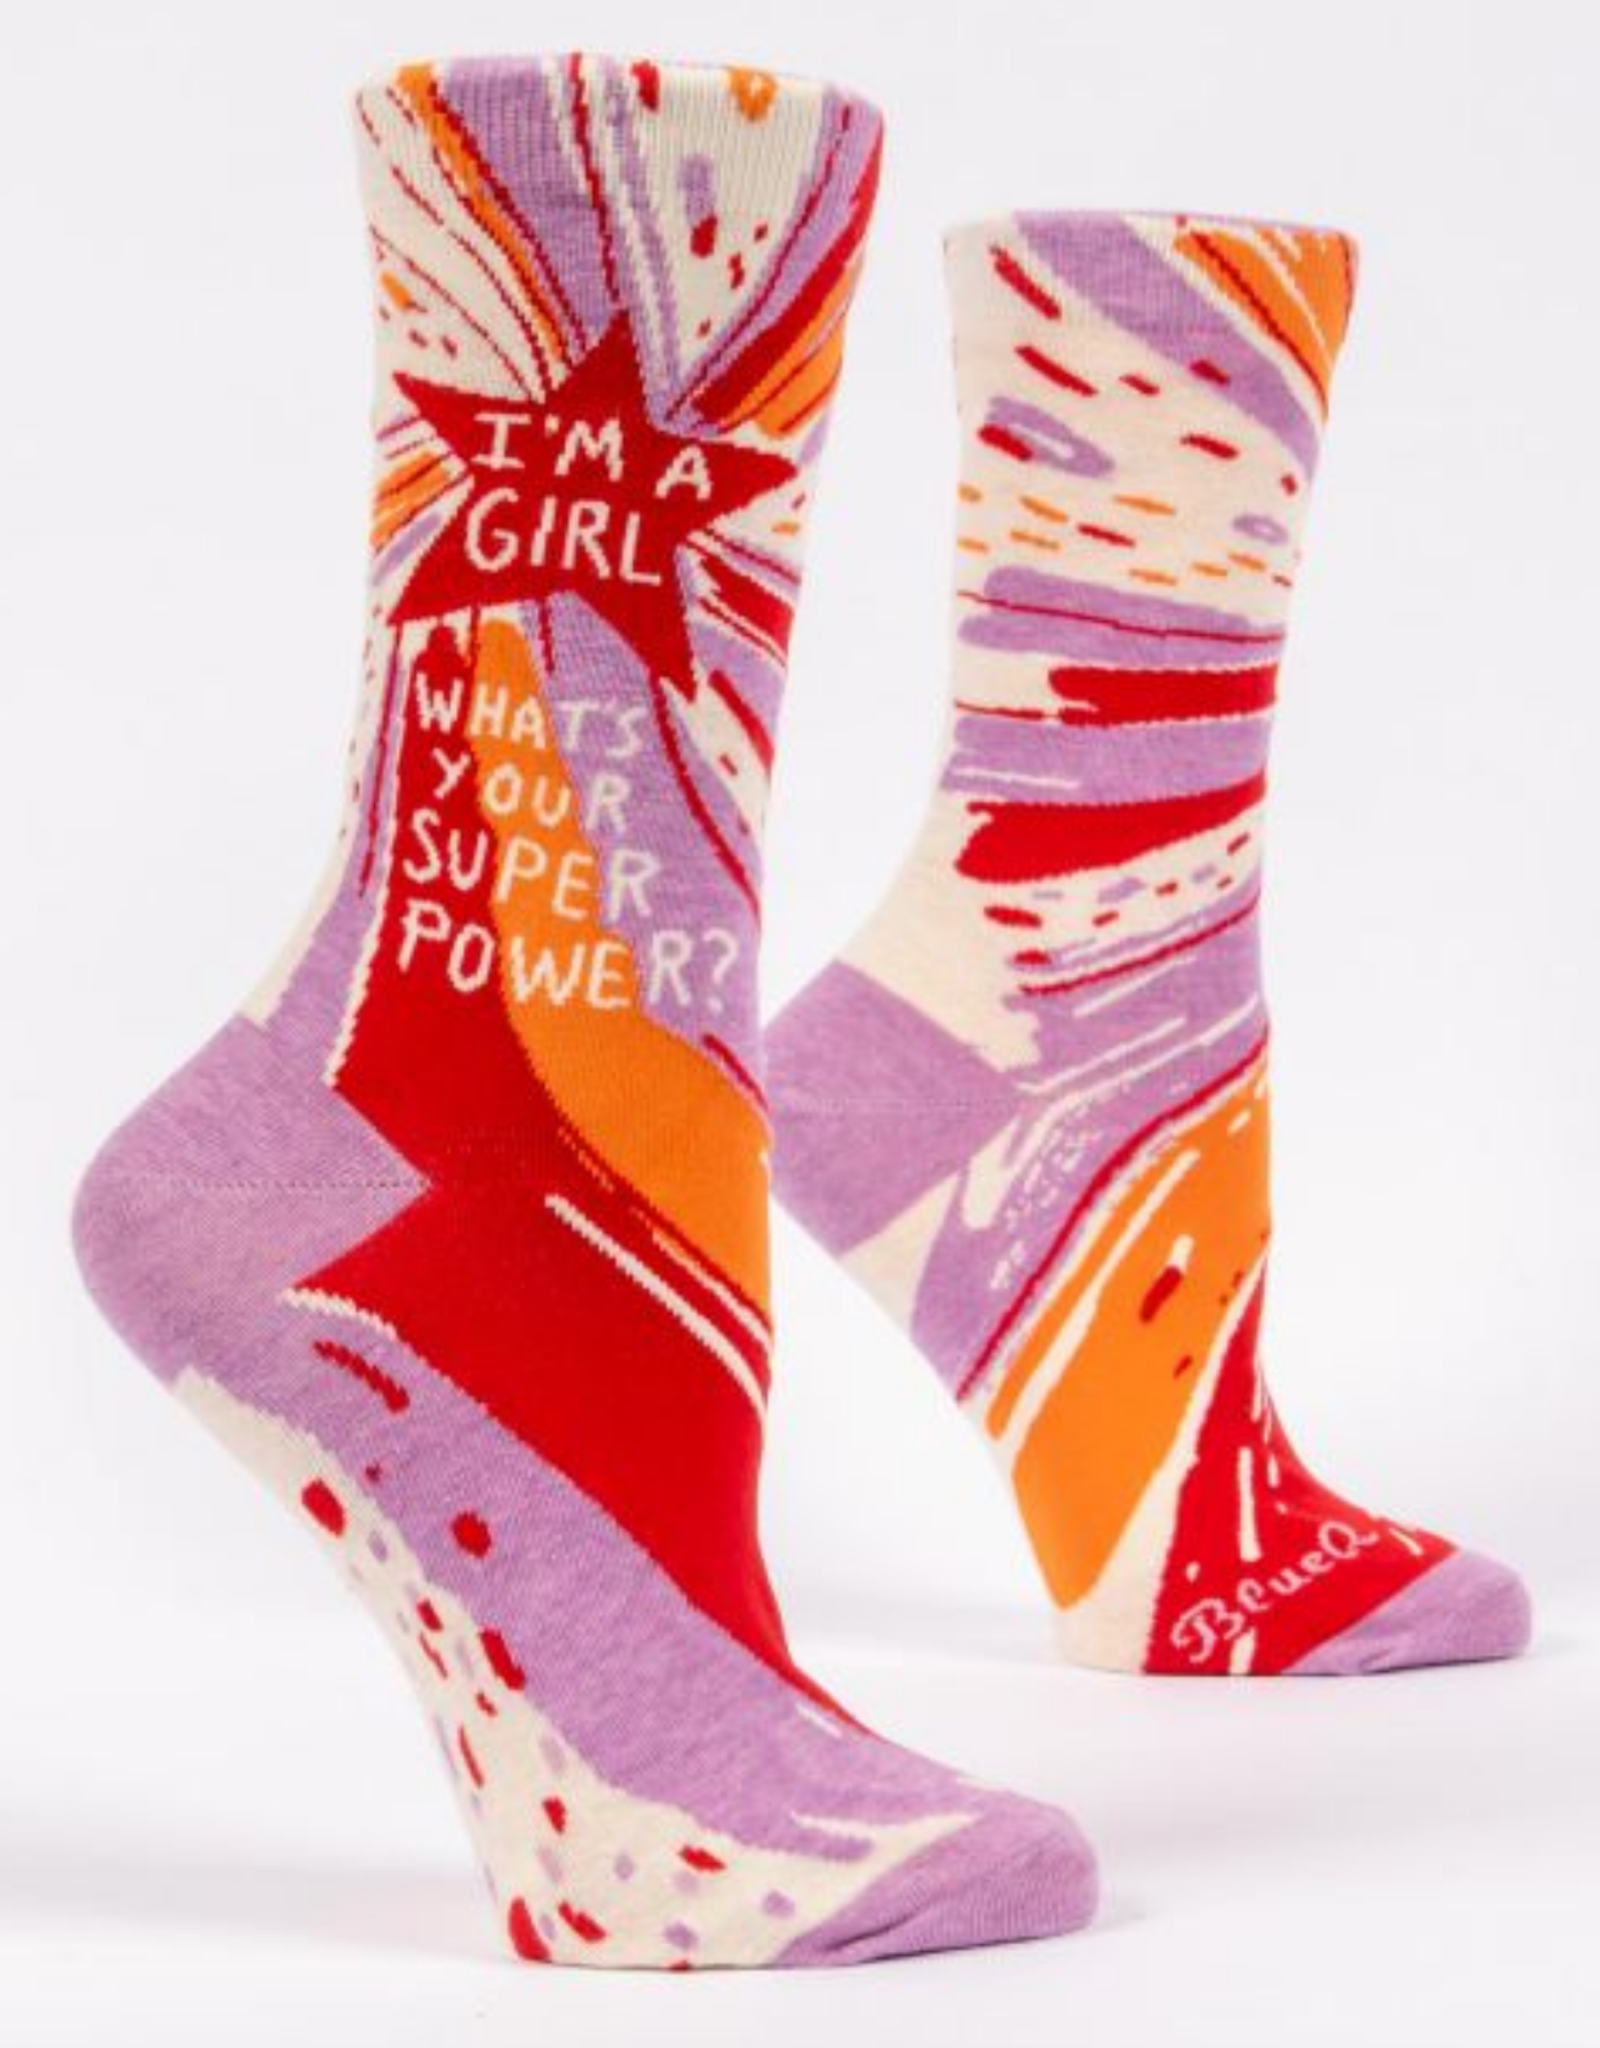 I'm A Girl. What's Your Superpower? Women's Crew Socks